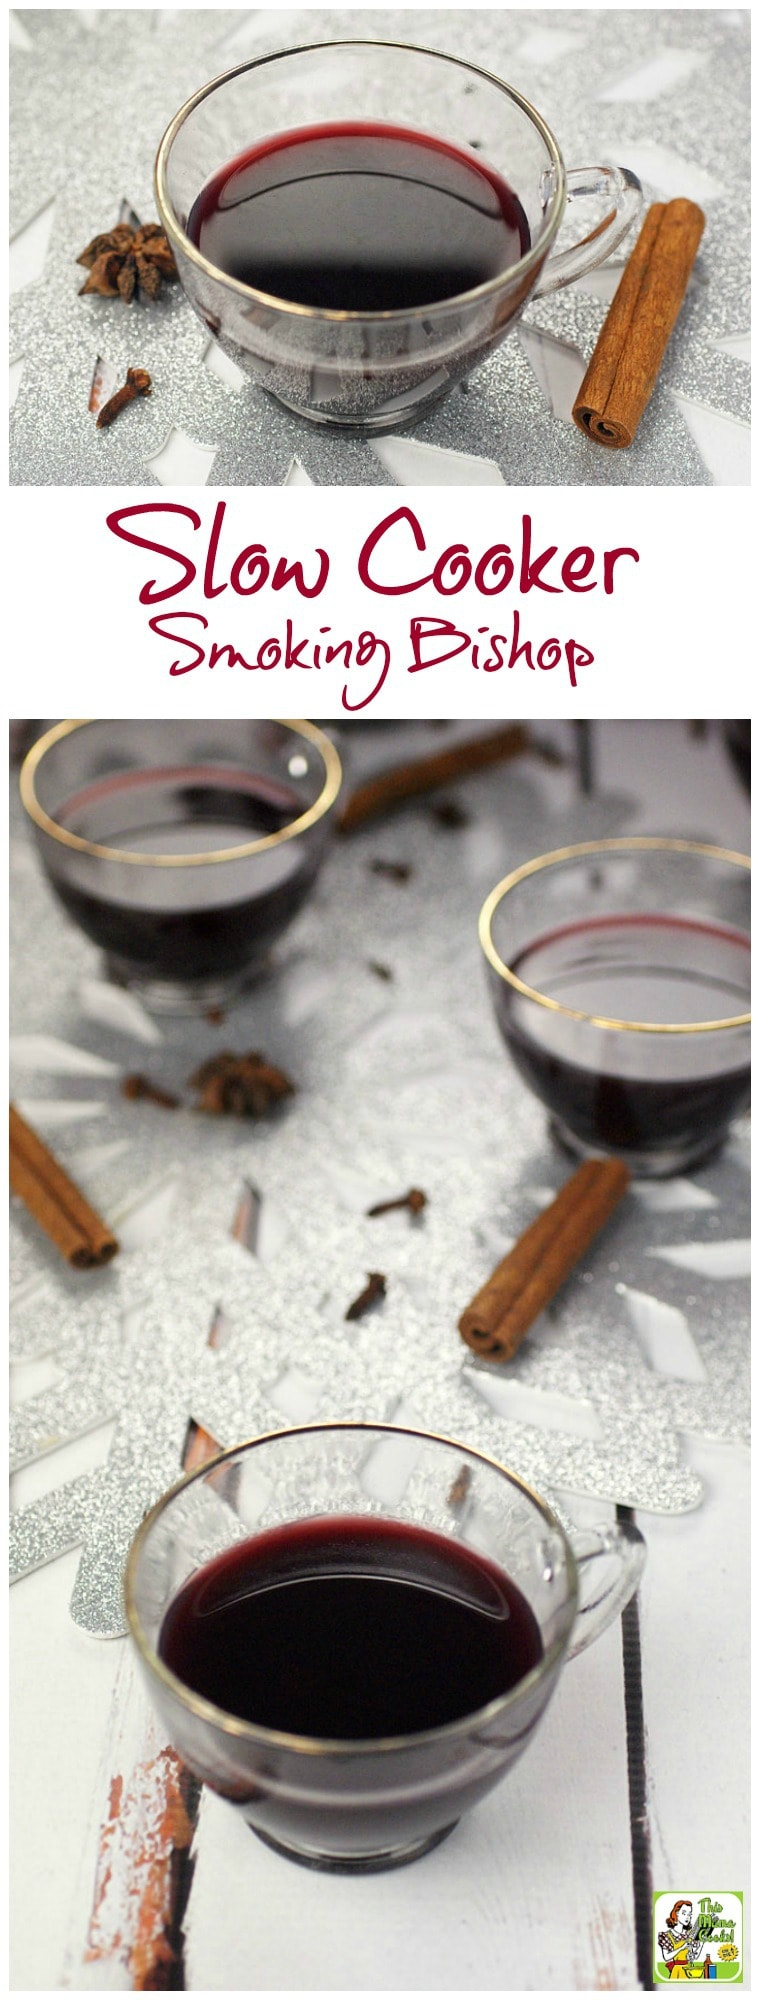 Need a mulled spiced wine recipe for a Christmas or New Year's Eve party? Smoking Bishop is a warmed, spiced fruit wine and port drink. Usually, it takes two days to make, but this recipe cuts the time to half a day by using a slow cooker! Your guests will love this crock-pot party drink recipe! #slowcooker #crockpot #wine #cocktails #mulledwine #drinks #drinking #smokingbishop #drinkrecipe